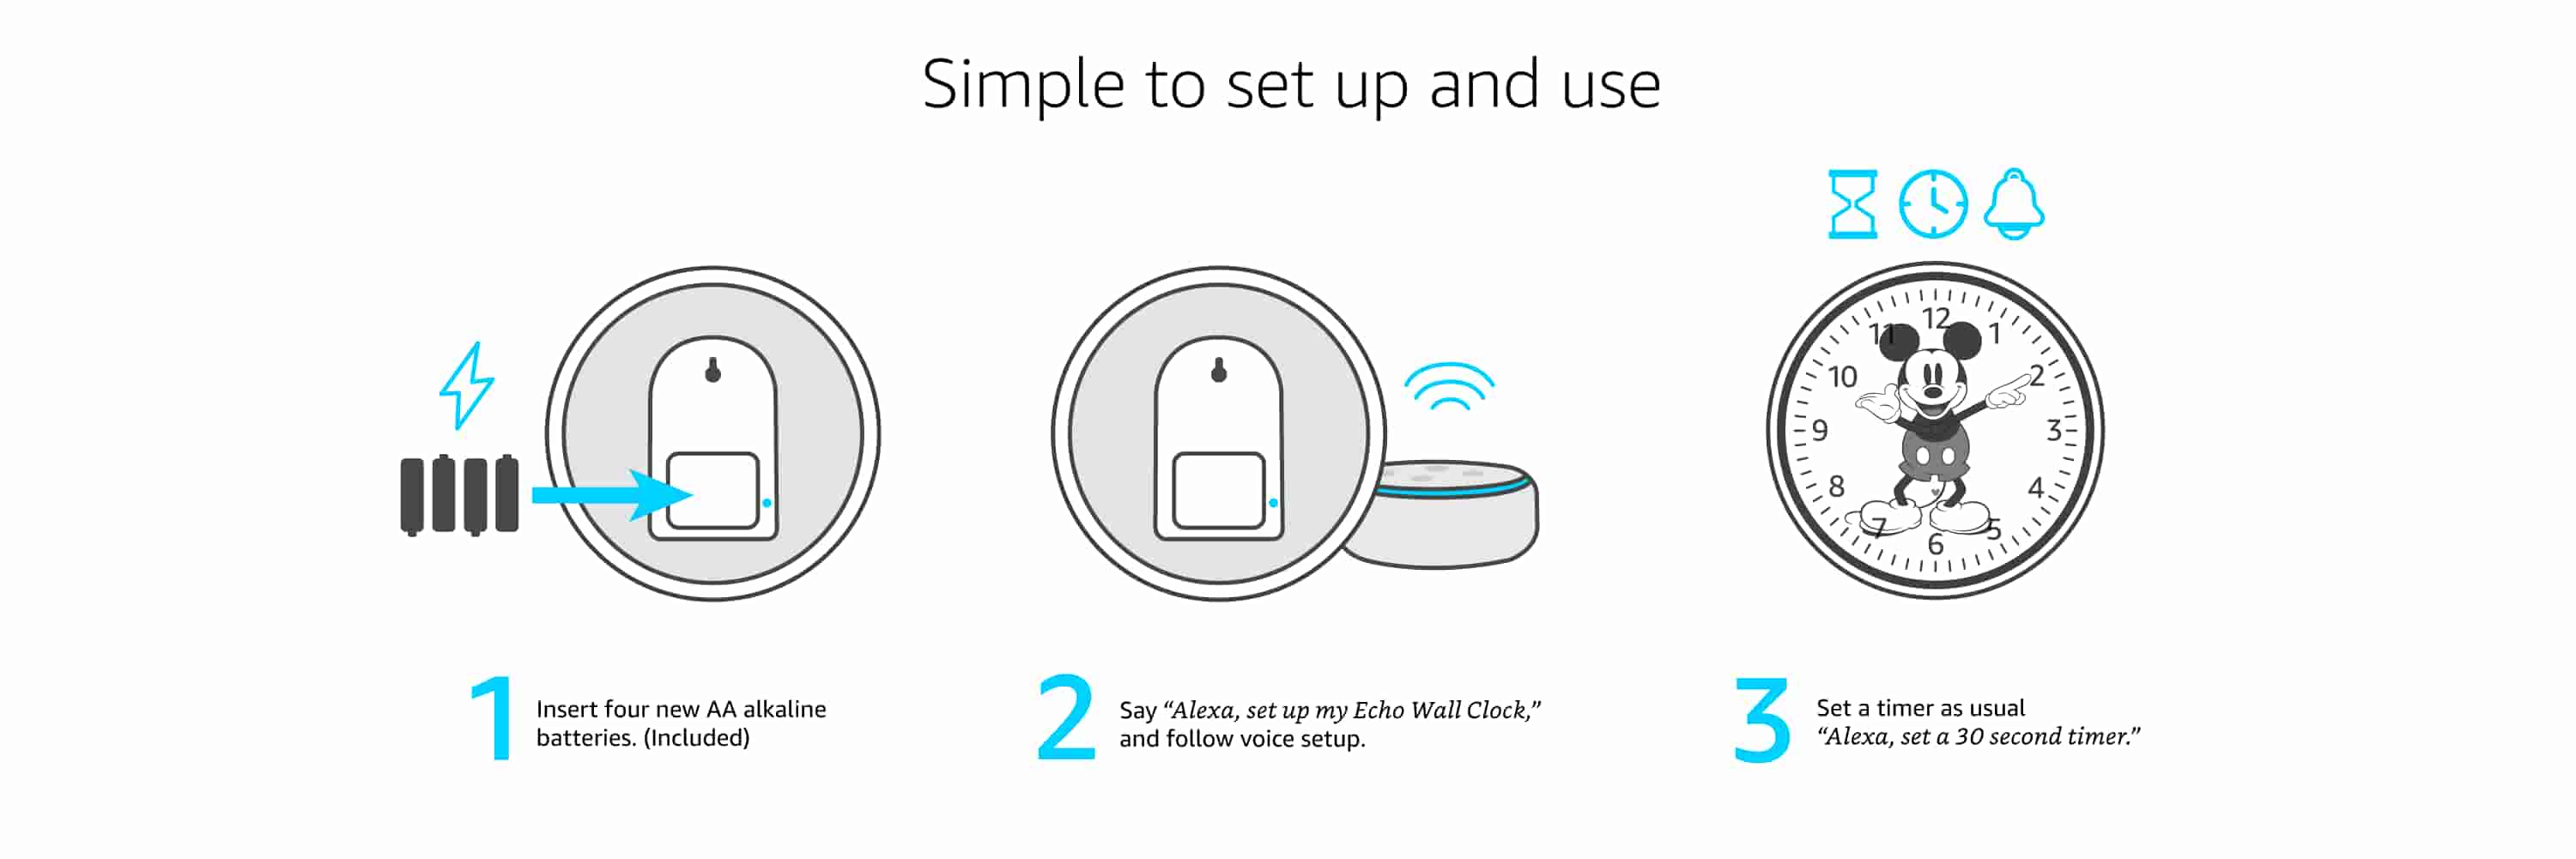 Echo Wall Clock is SImple to set up and use. 1. Inserts four new AA alkaline batteries, included. 2. Say Alexa, setup my Echo Wall clock, and follow voice setup. 3. Mount clock on wall and set a timer as usual.